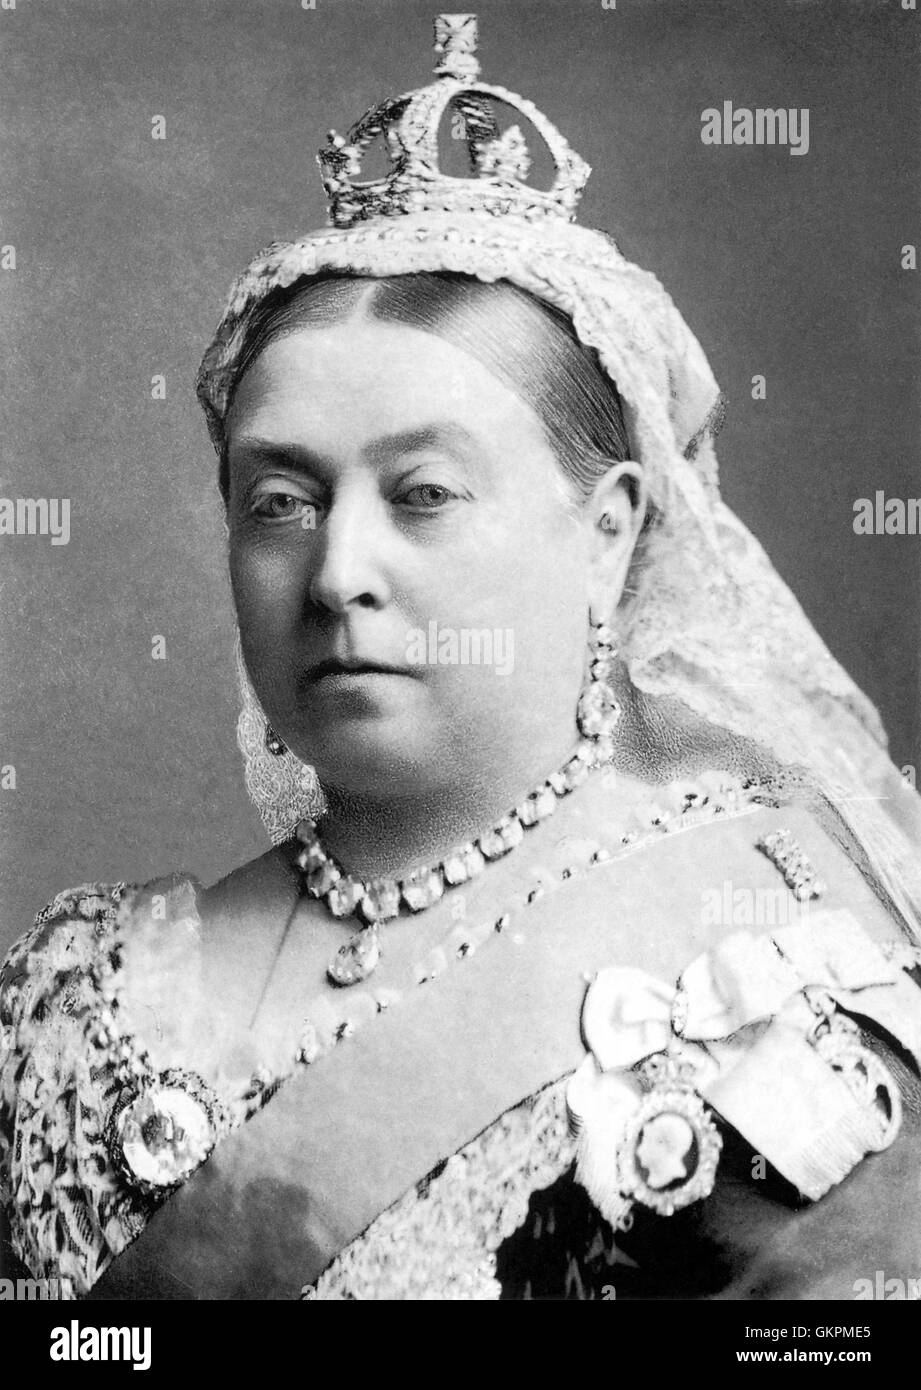 QUEEN VICTORIA (1819-1901) wearing the small diamond crown photgraphed by Alexander Bassano in 1882 - Stock Image